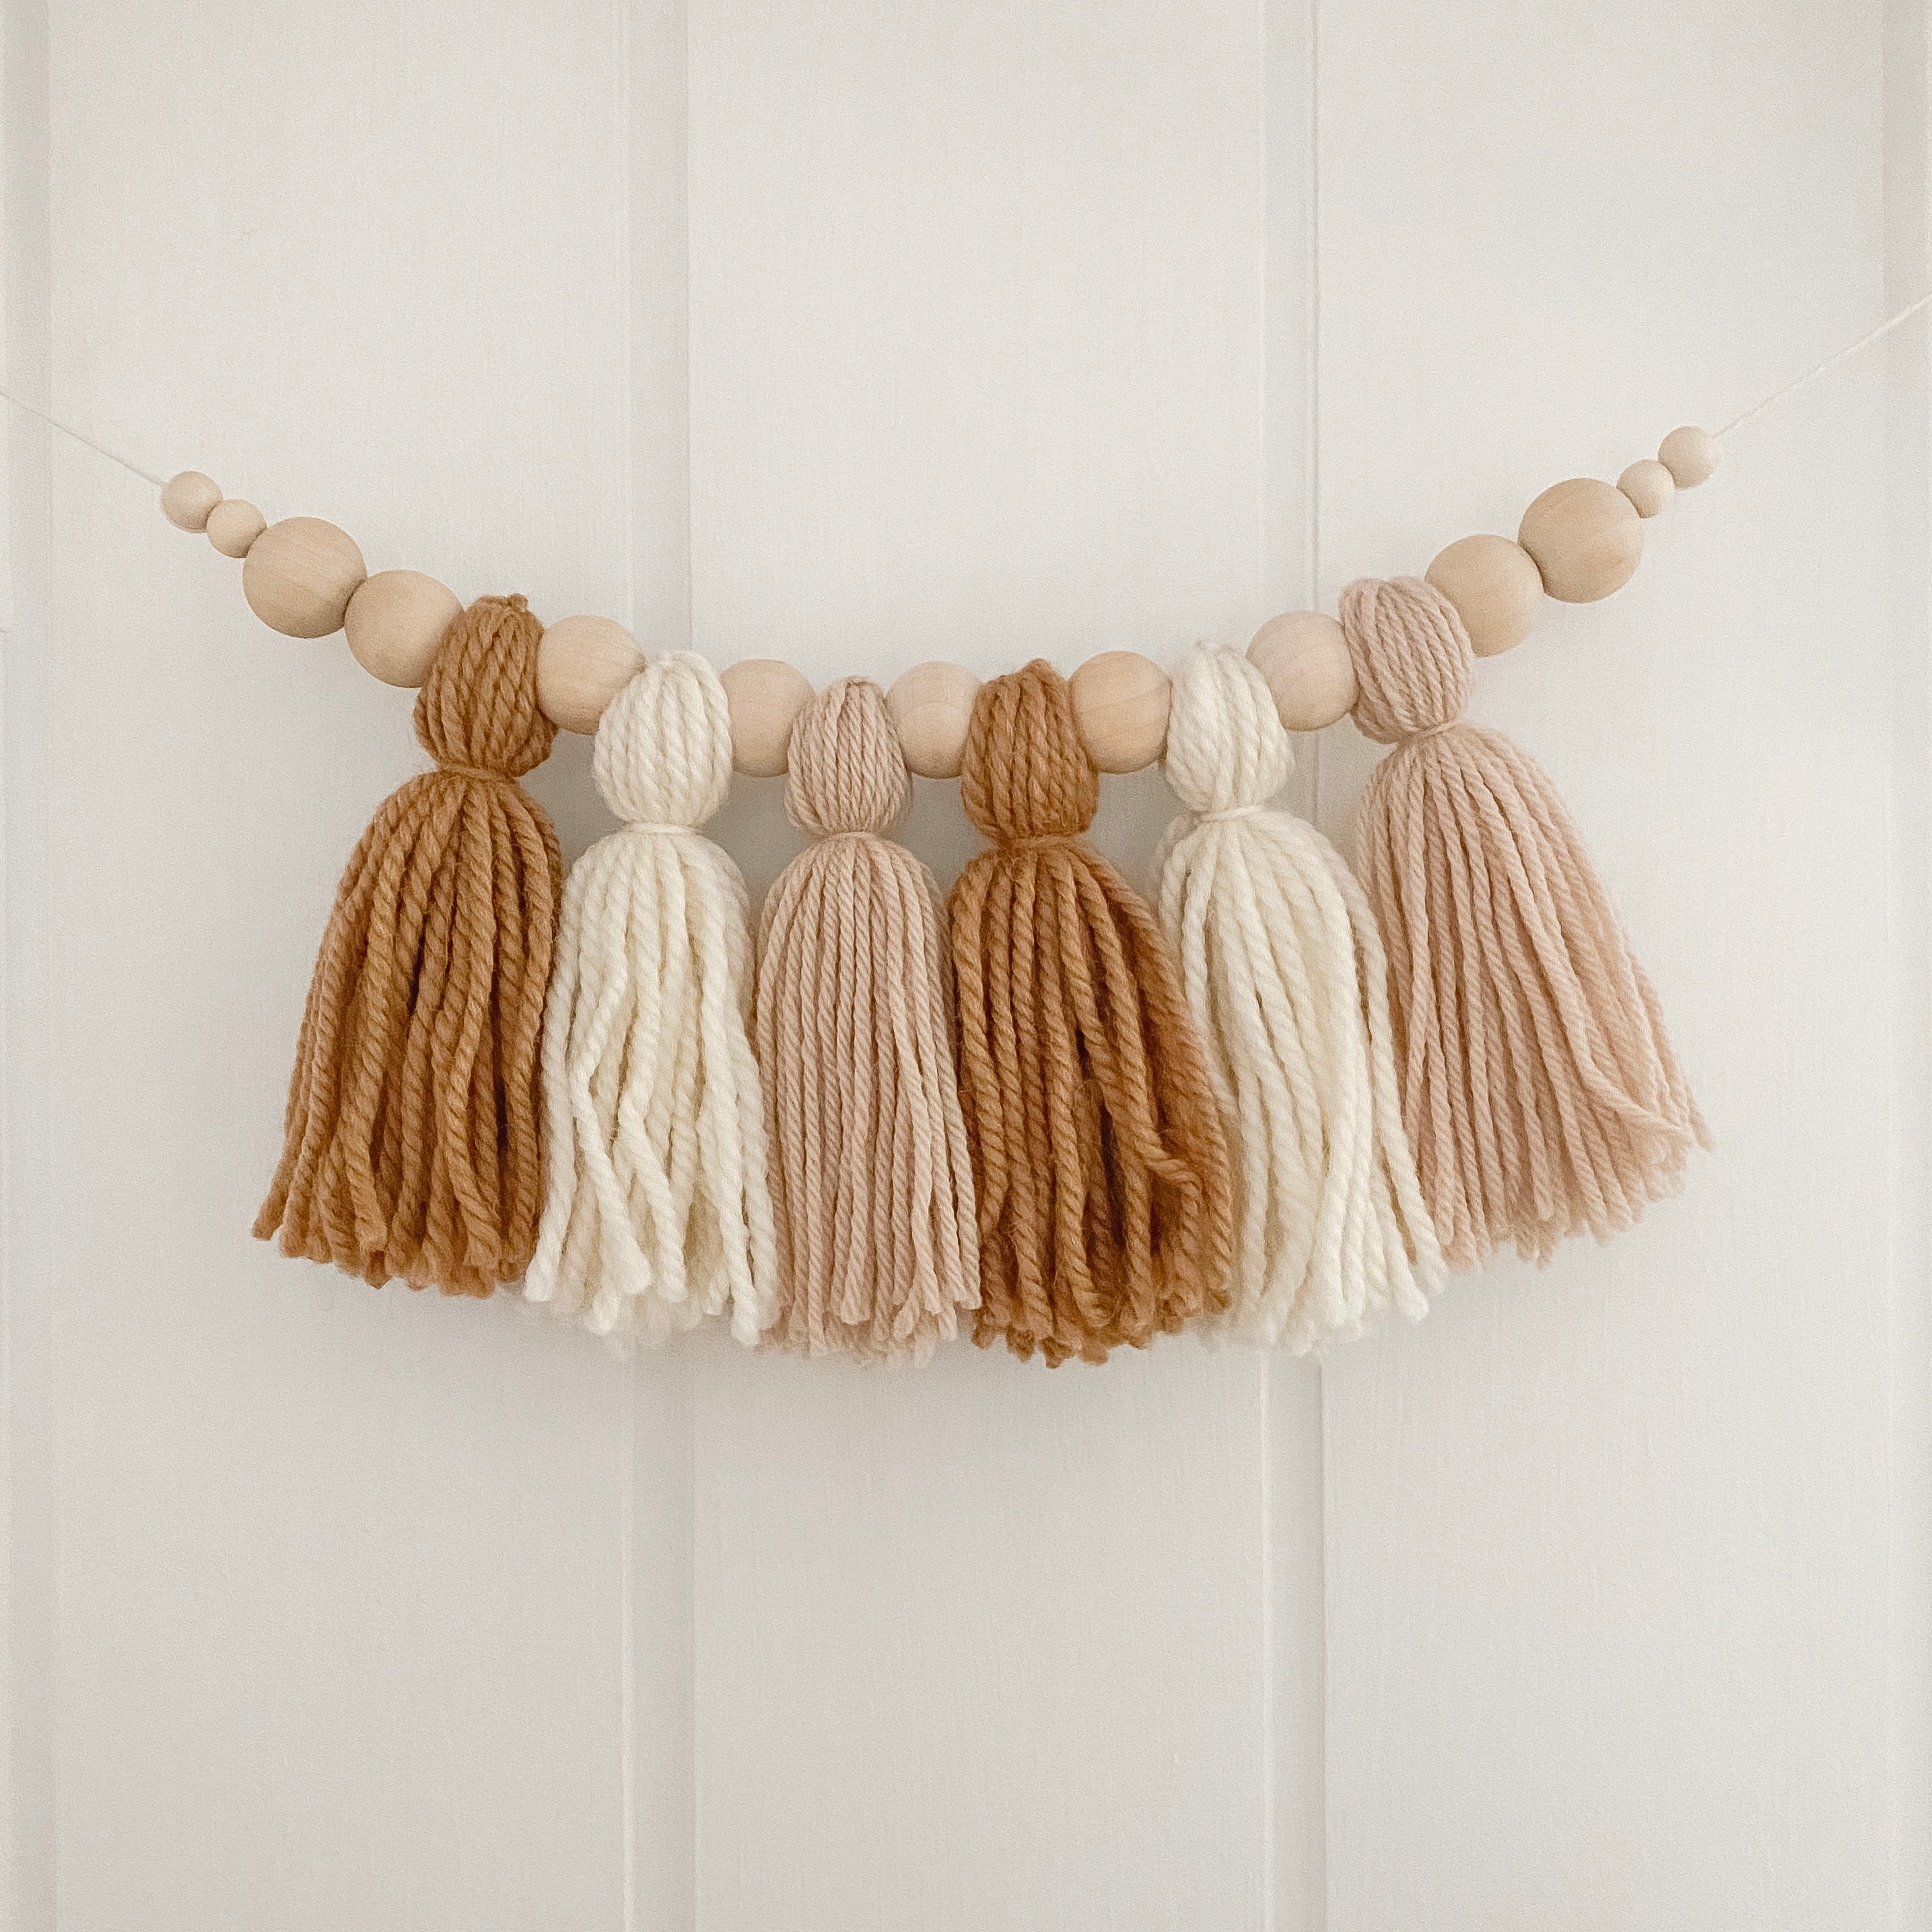 Neutral yarn tassel garland hanging on nursery wall